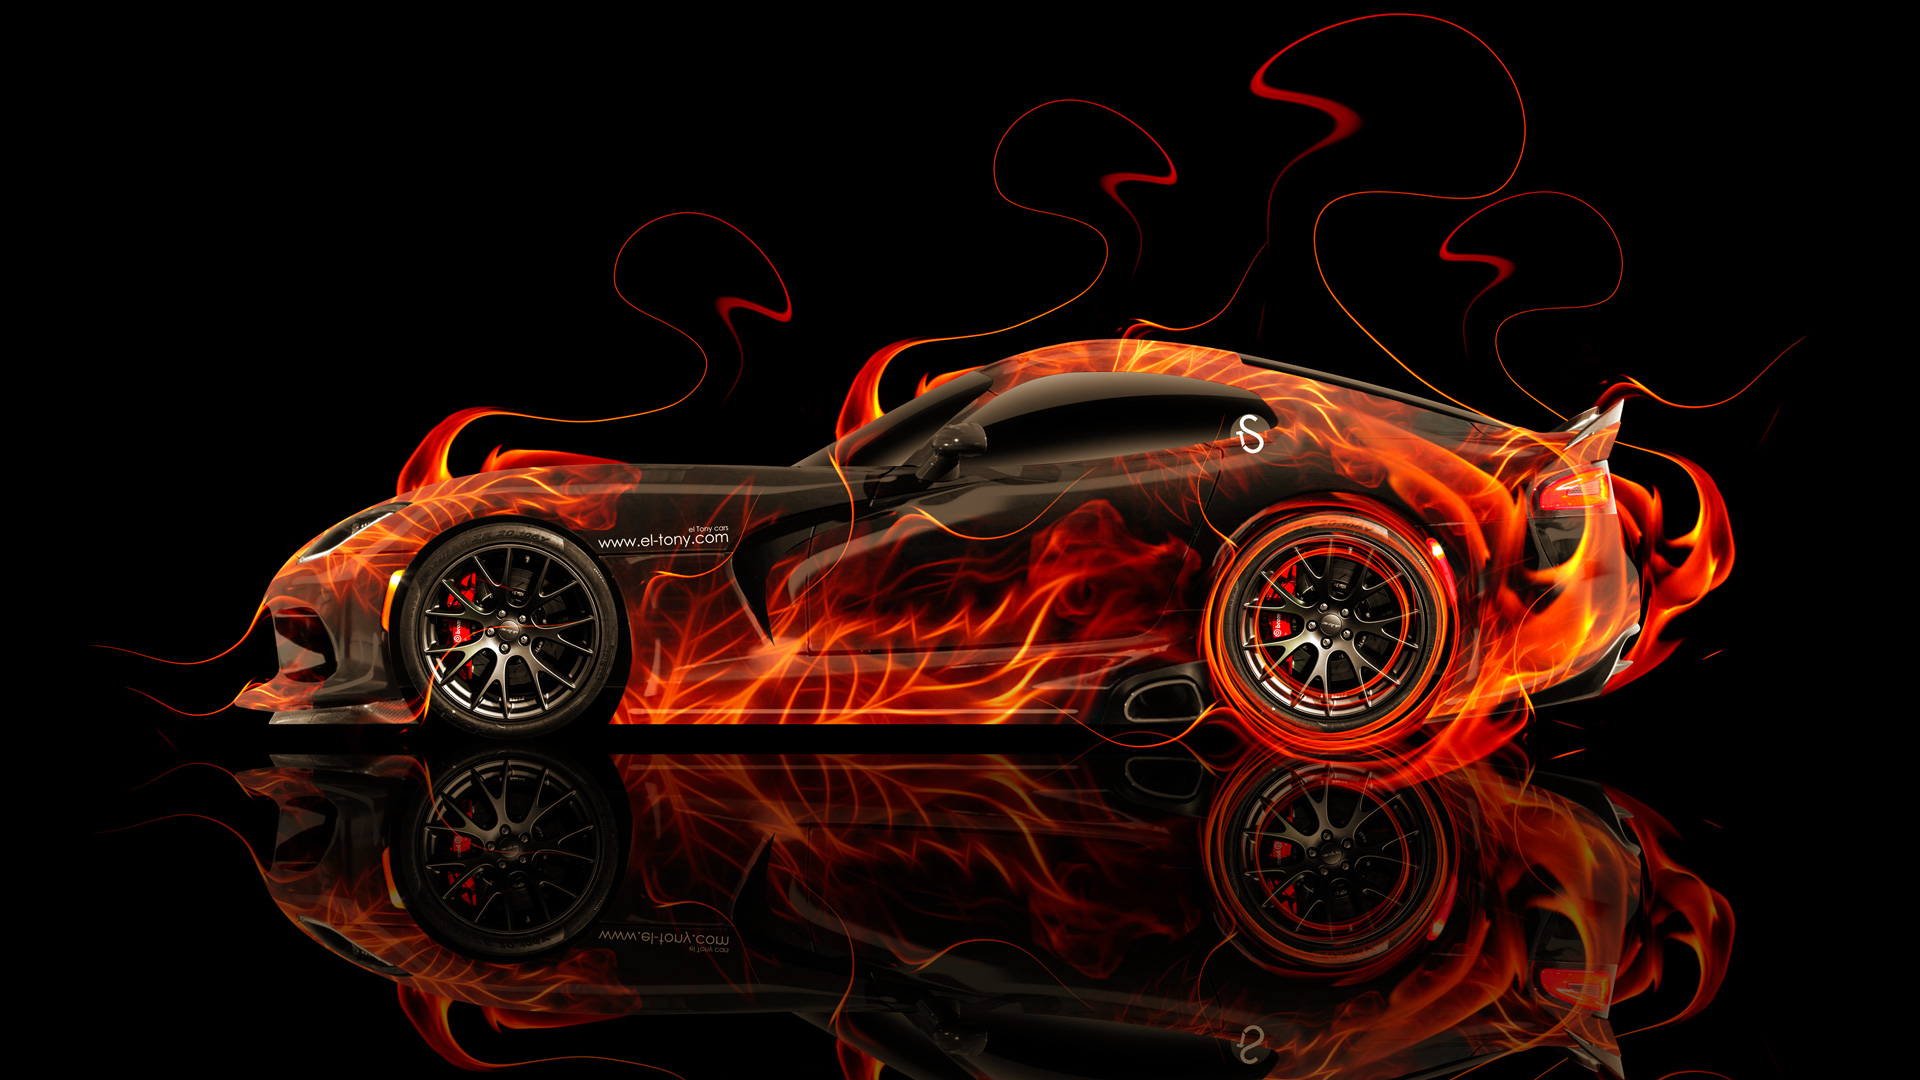 Dodge Viper Srt Side Super Fire Abstract Car 2014 El Tony